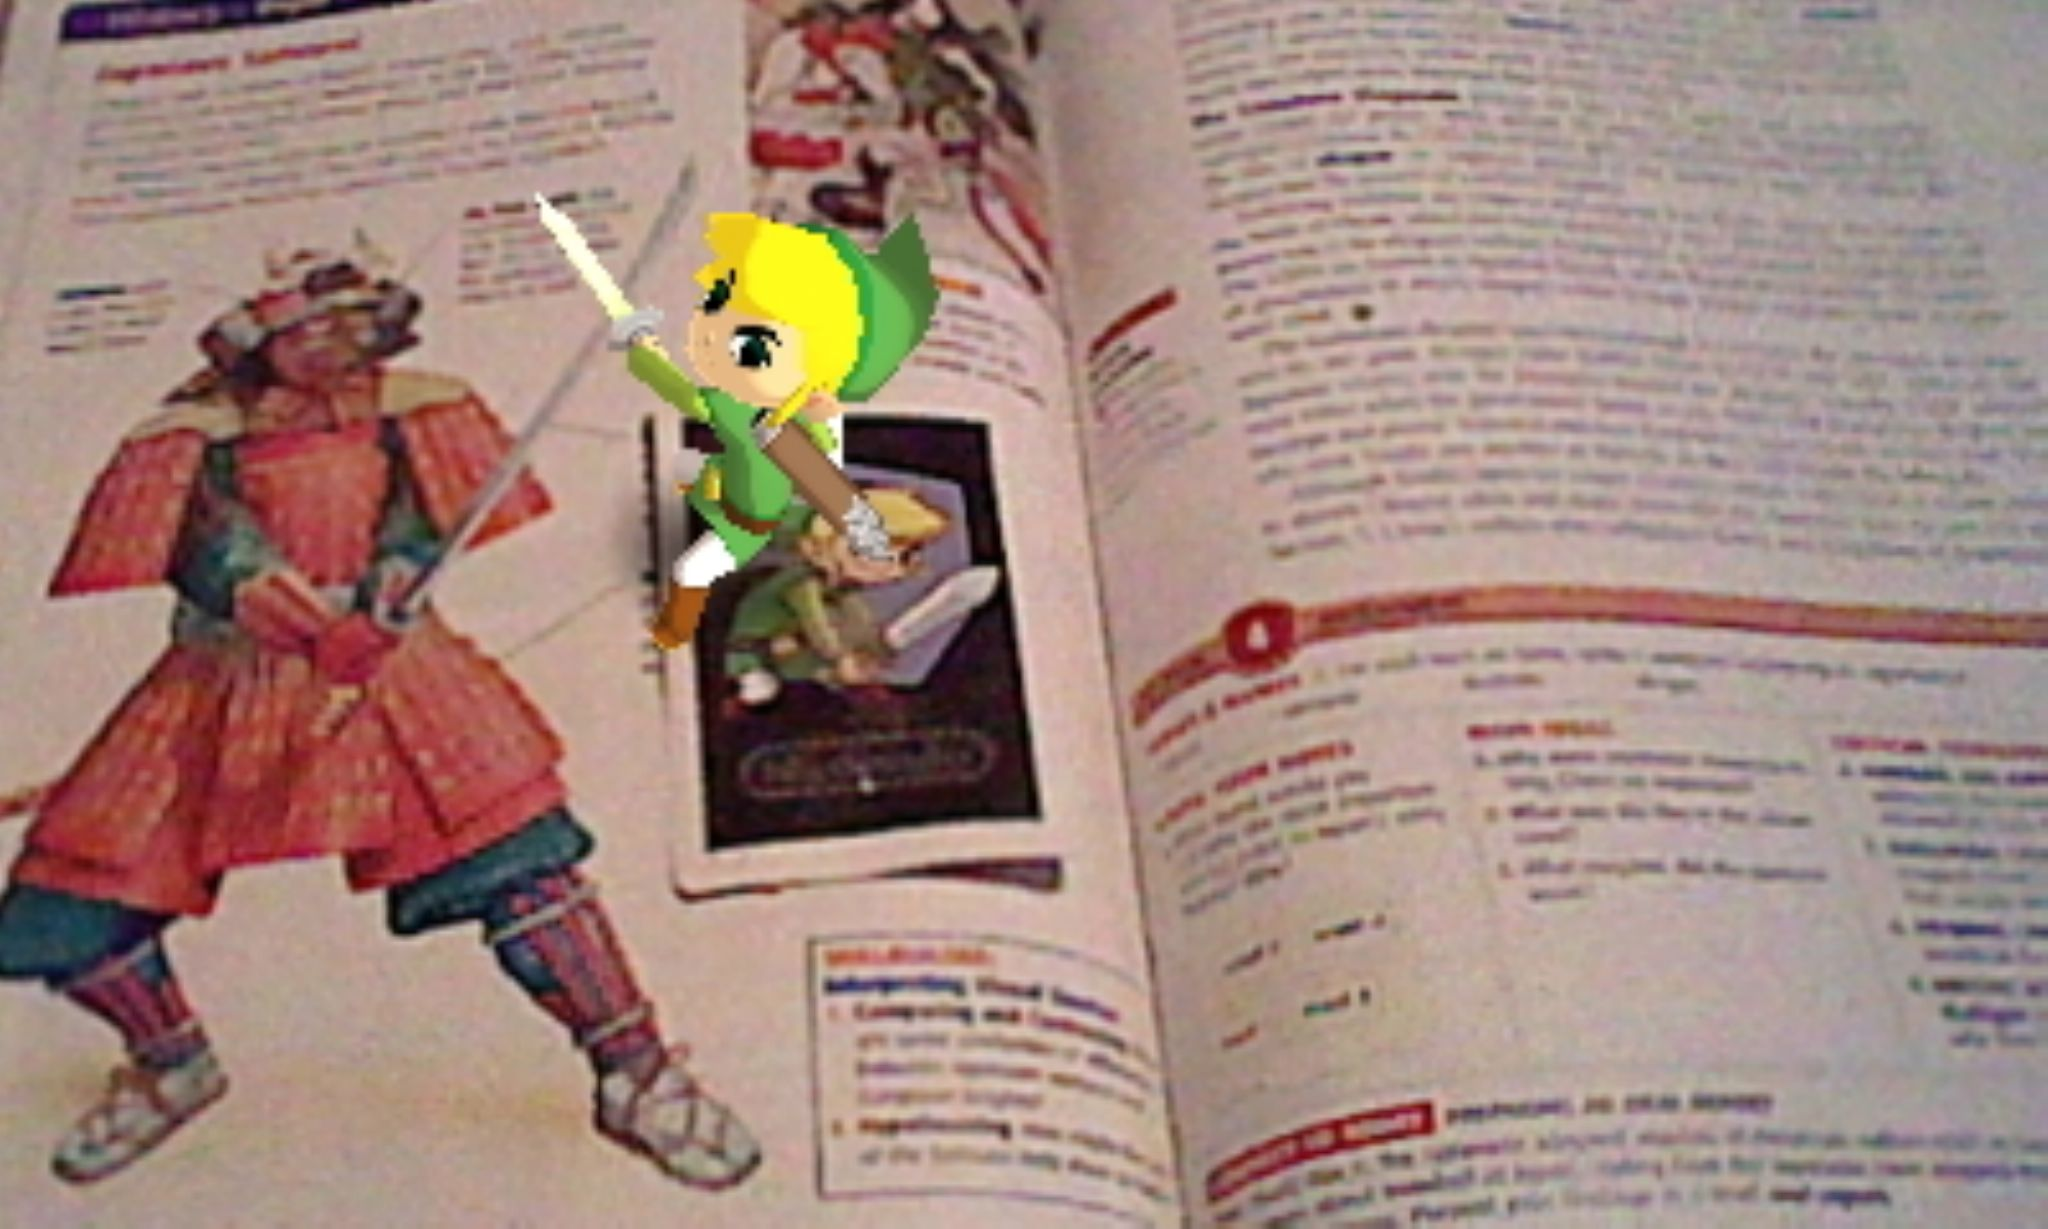 3ds camera link on my textbook by Jordan deBEST